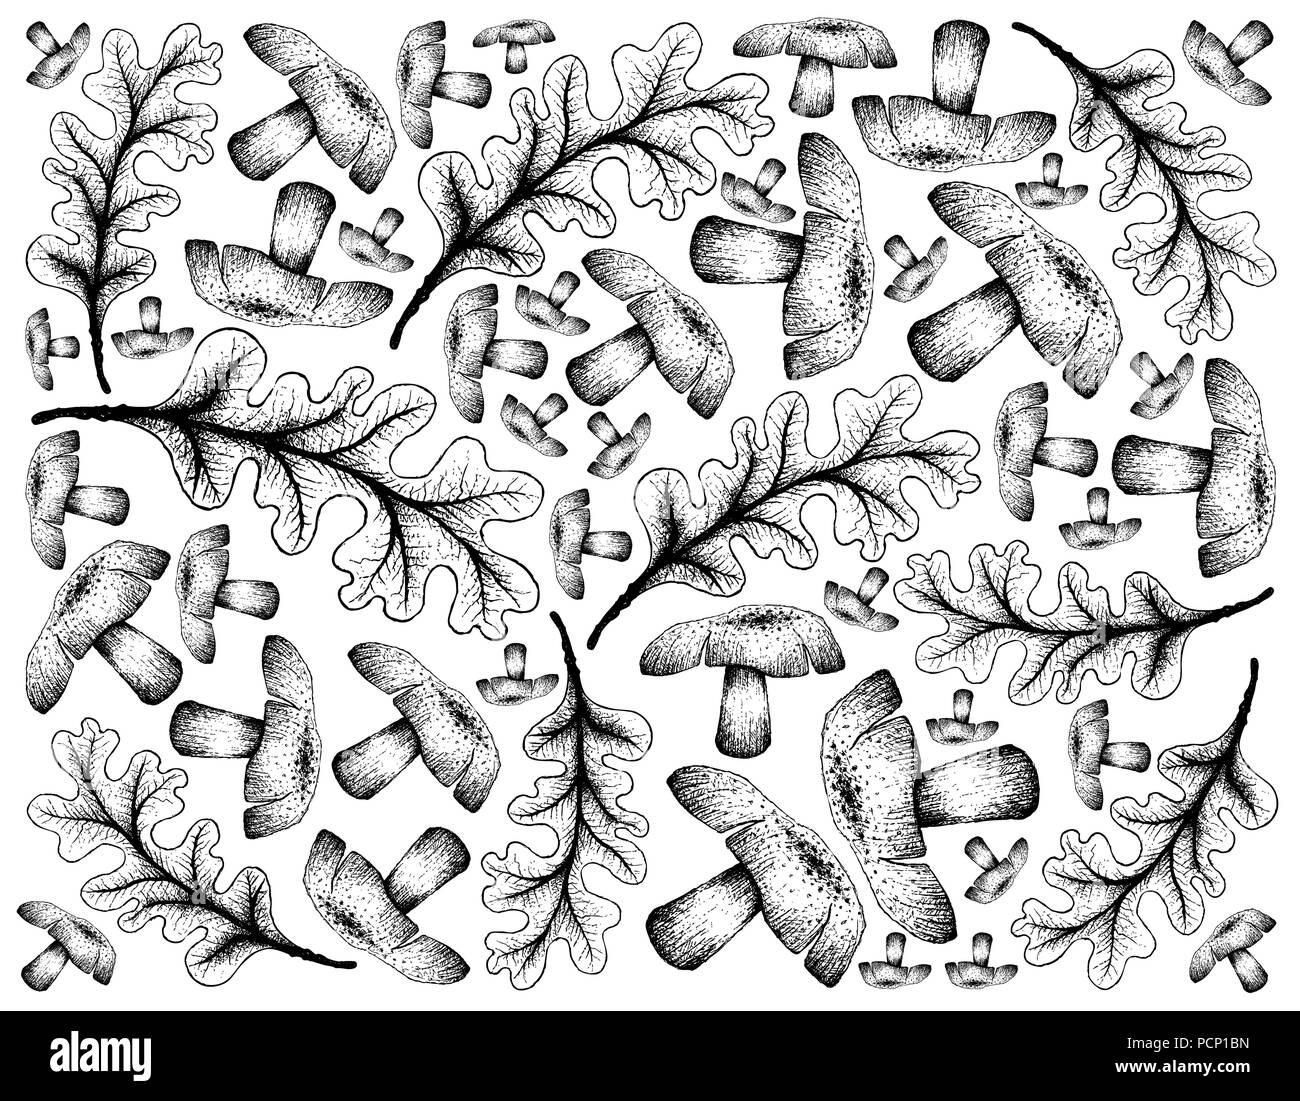 Oak Tree Seed Black And White Stock Photos Images Alamy